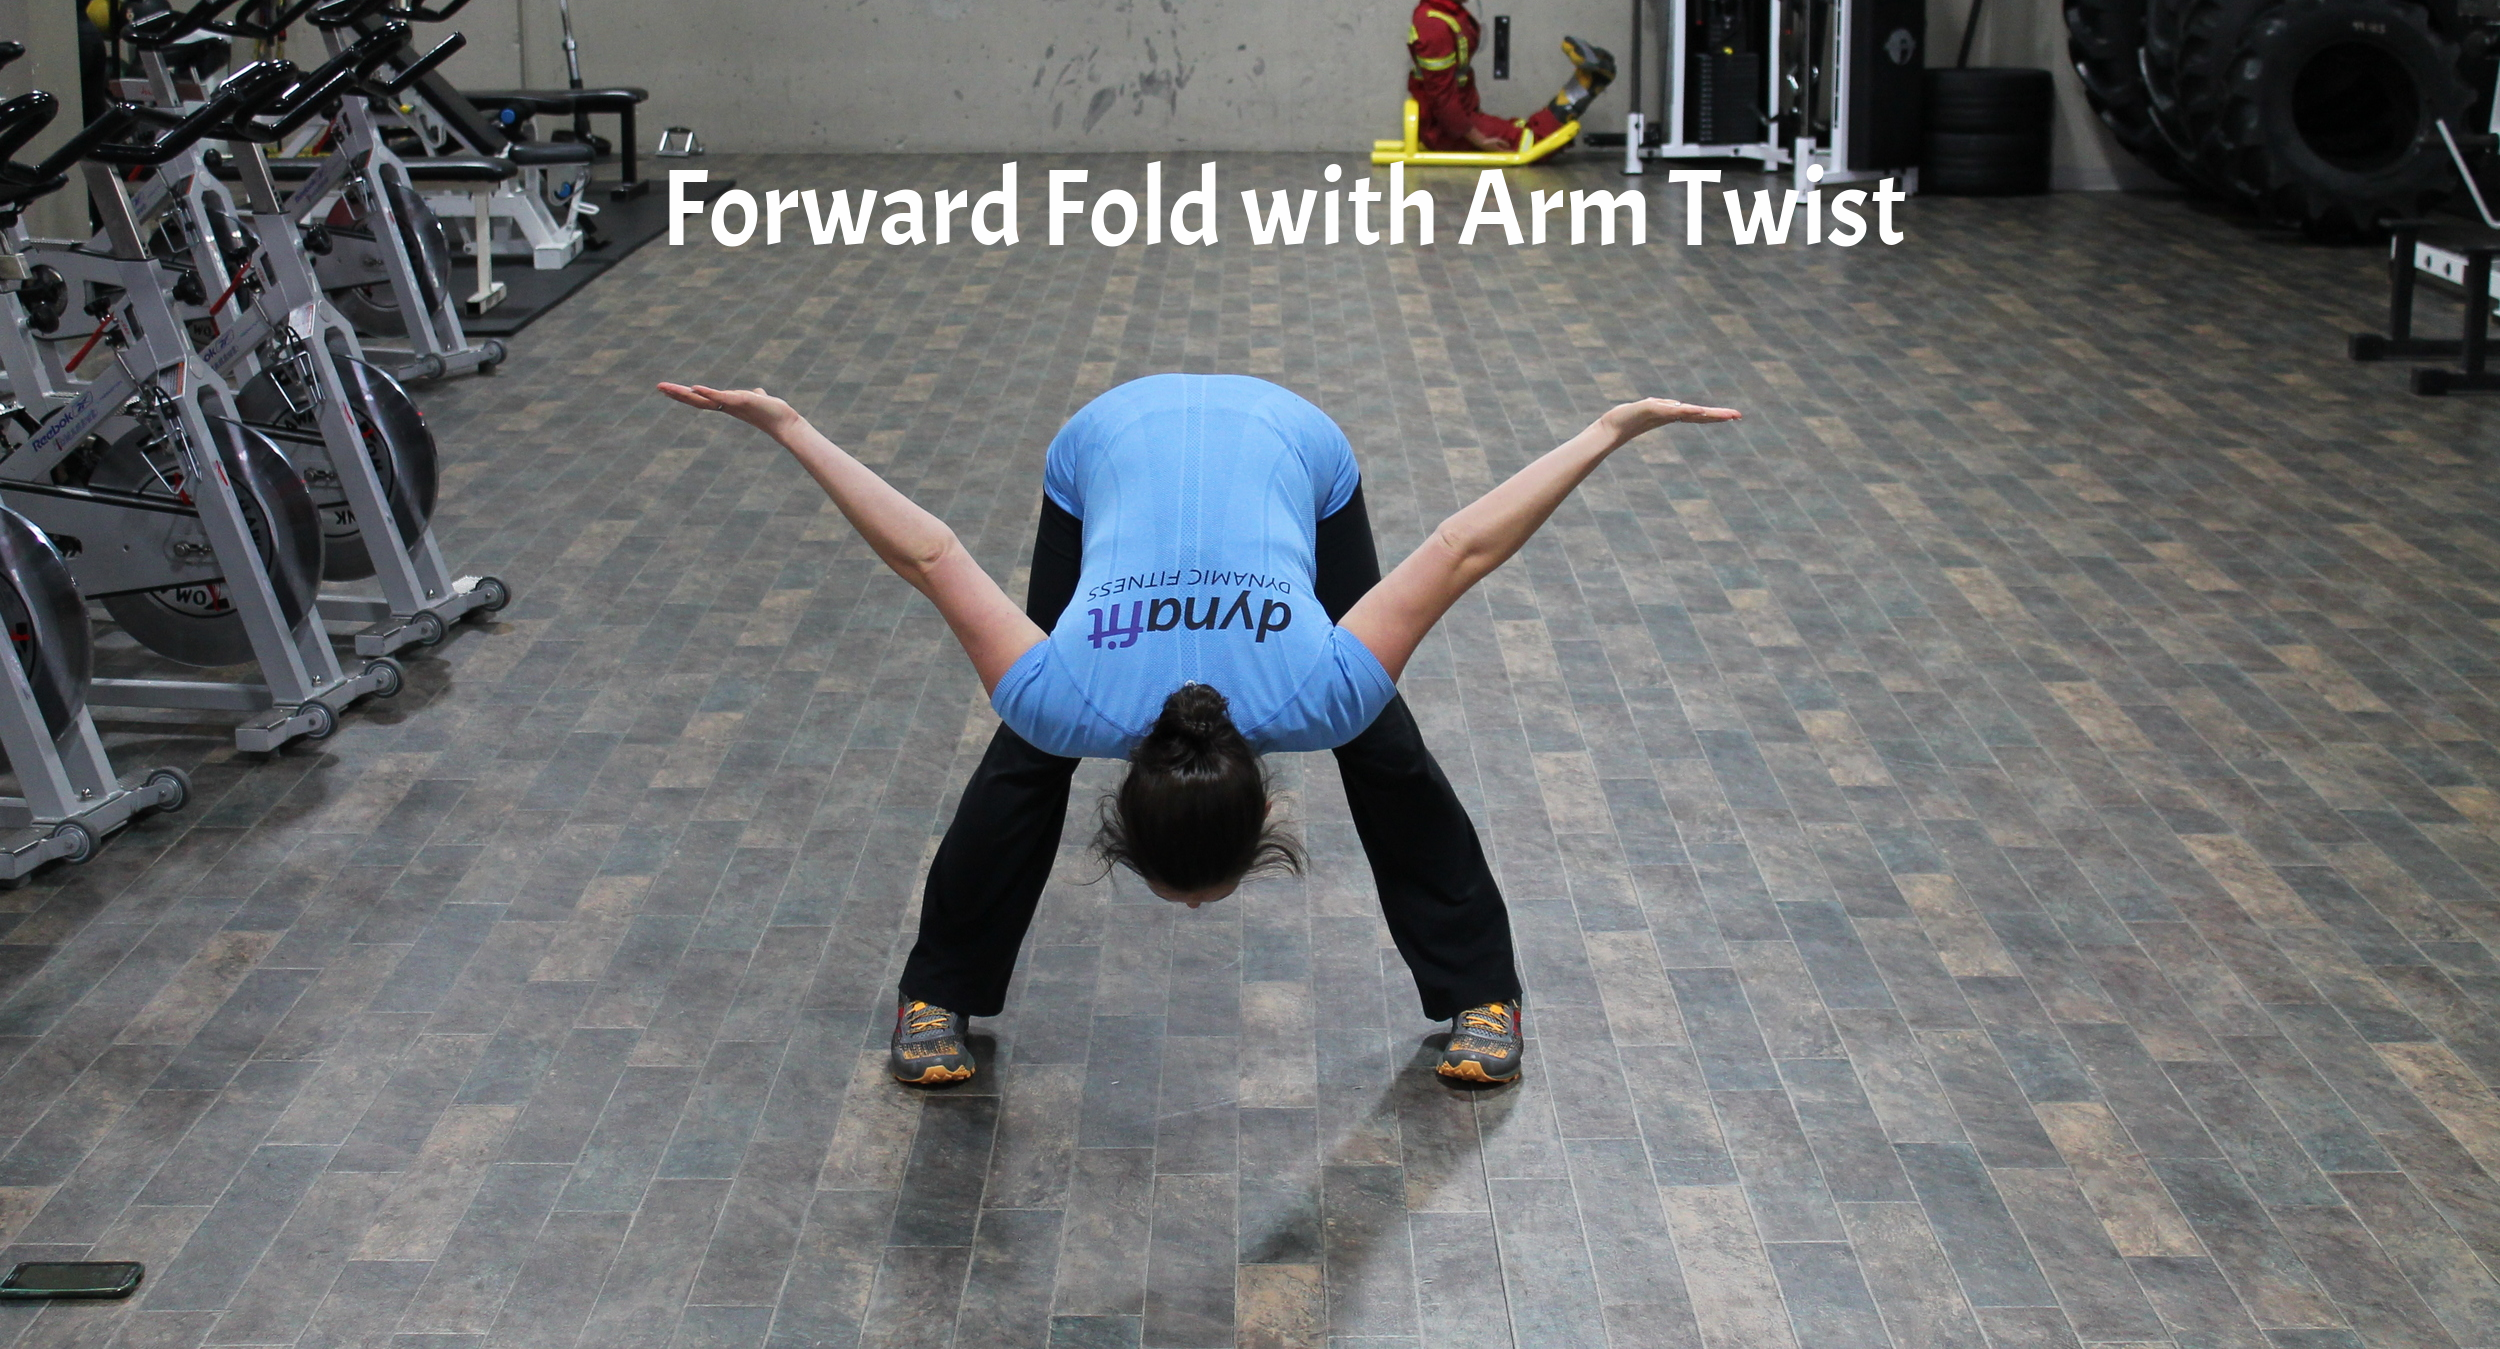 Stand with feet hip width apart (or slightly wider) bend forward from the waist, keeping a very slight bend in the knees. As you fold forward, take the arms out to a 'T' position and turn the palms towards the sky. Hold for 30 to 60 seconds.